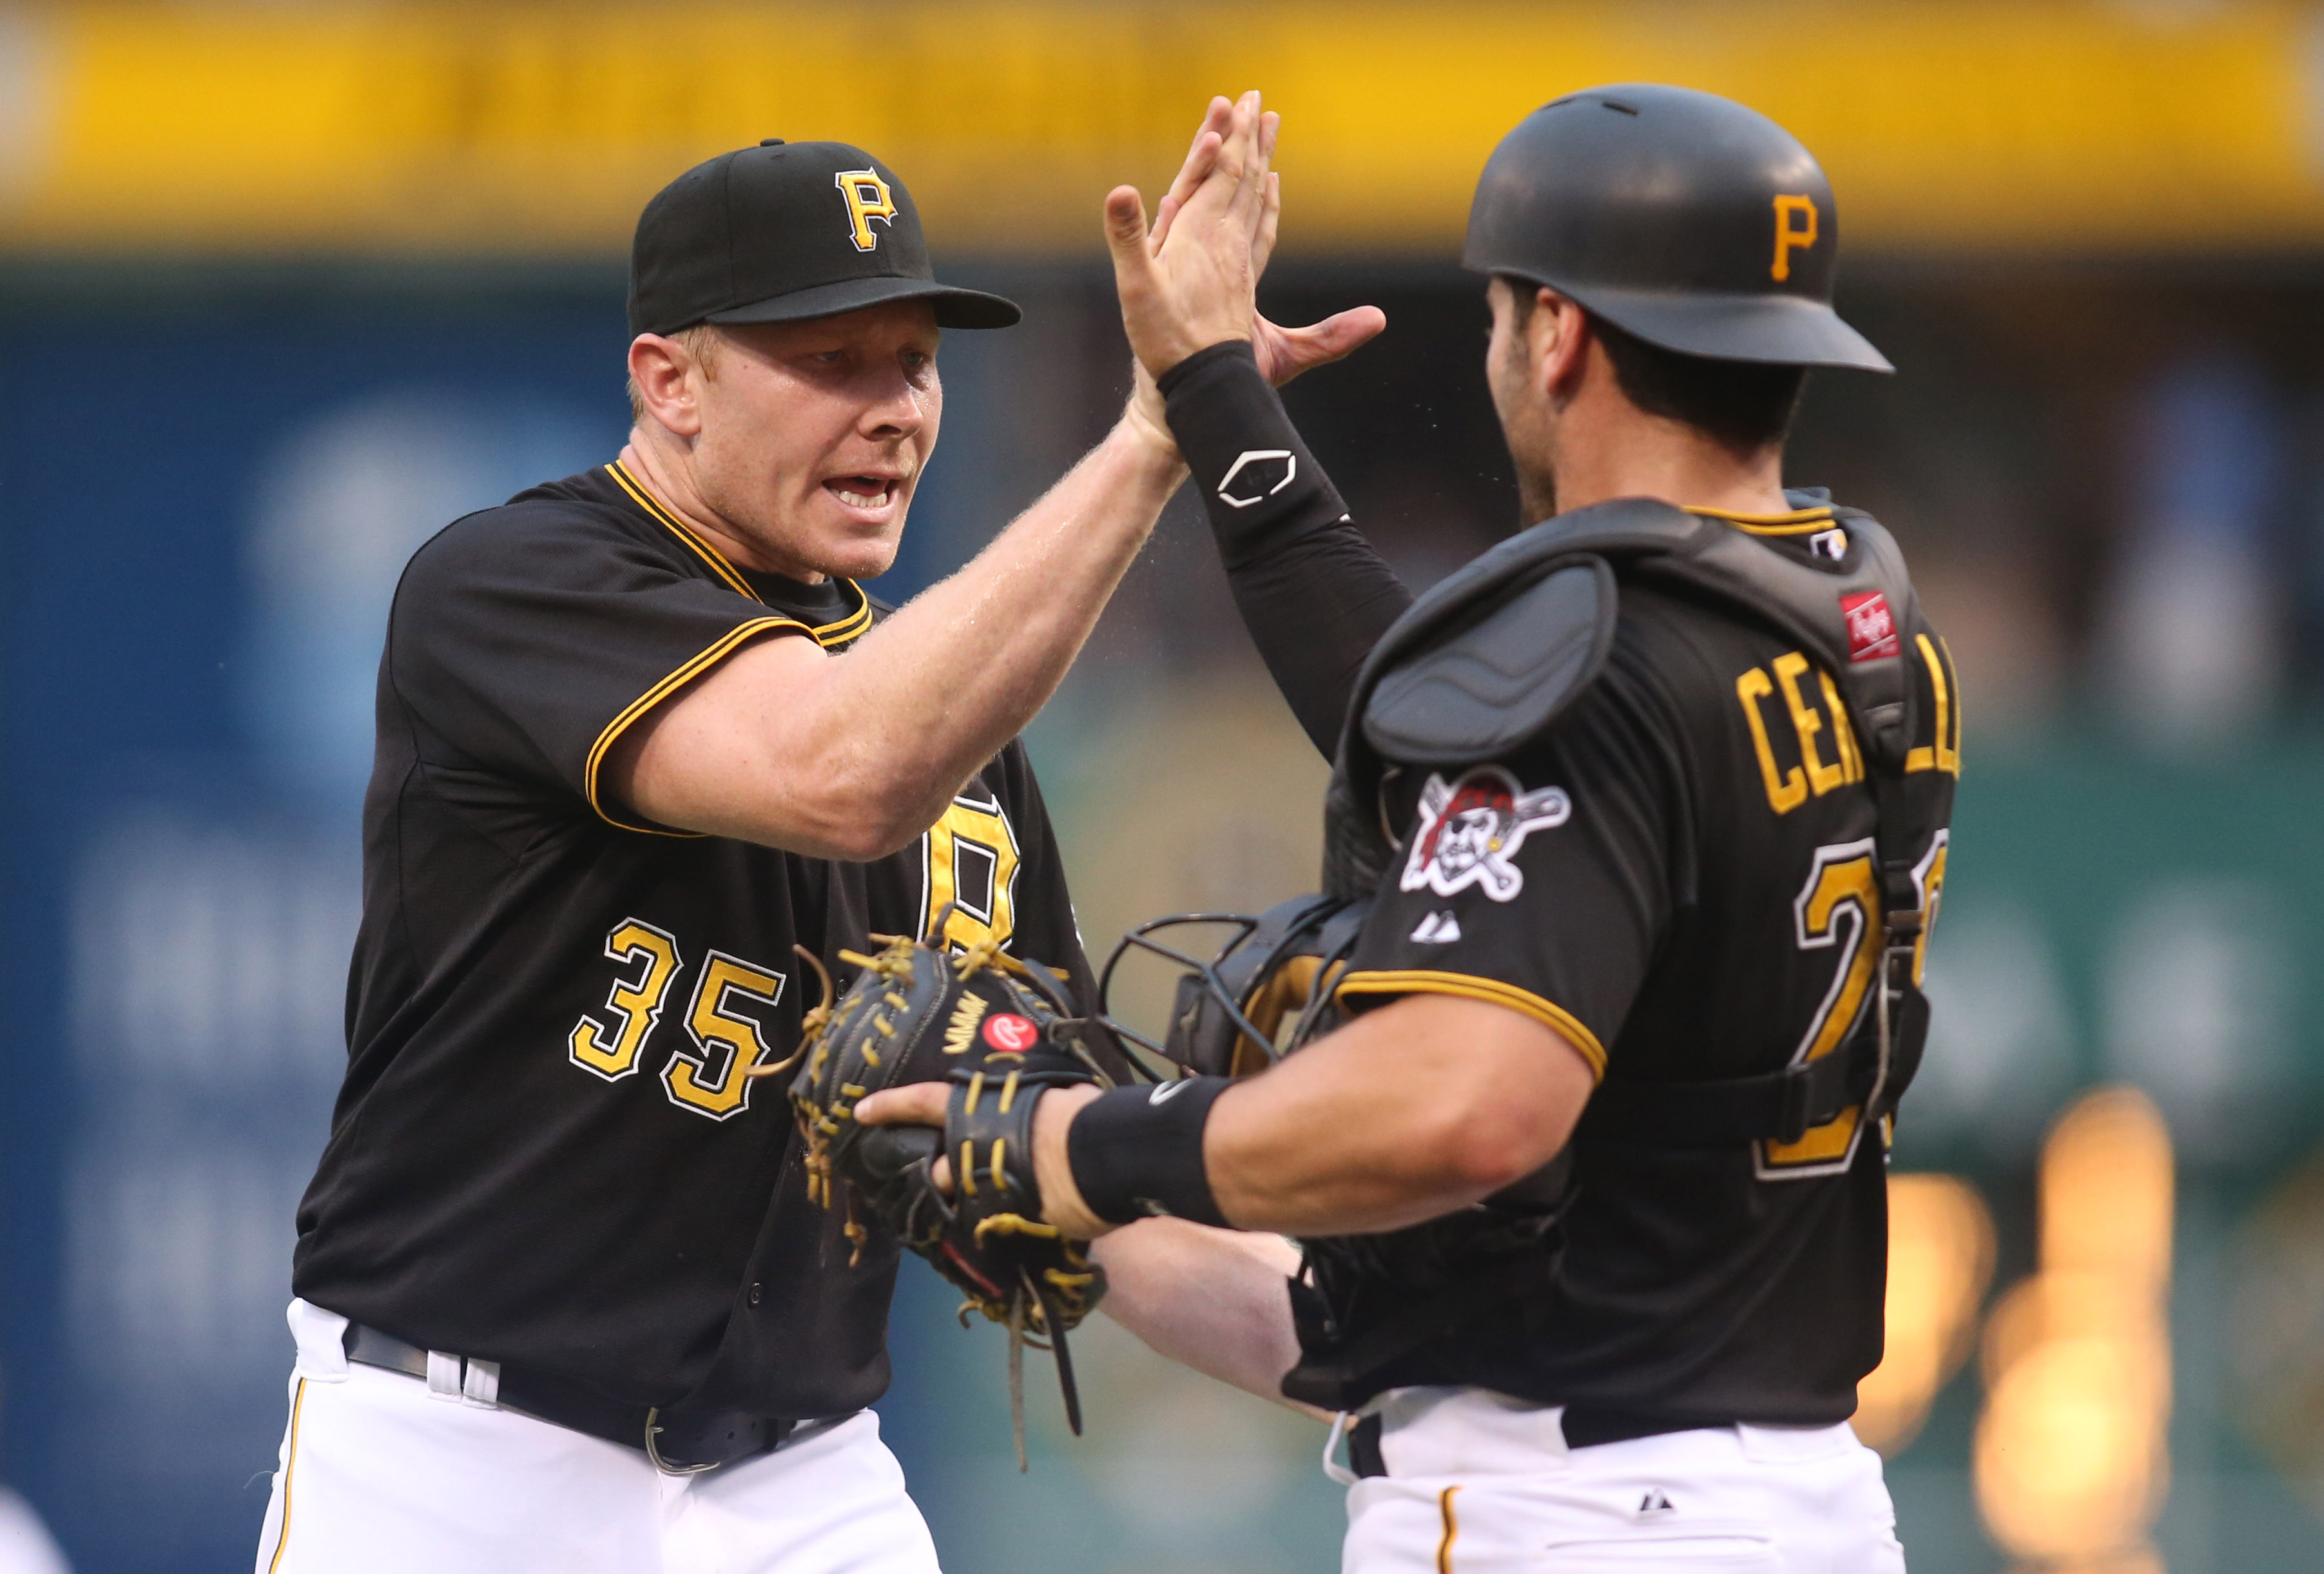 Aug 8, 2015; Pittsburgh, PA, USA; Pittsburgh Pirates relief pitcher Mark Melancon (35) and catcher Francisco Cervelli (29) celebrate after defeating the Los Angeles Dodgers at PNC Park. The Pirates won 6-5. Mandatory Credit: Charles LeClaire-USA TODAY Sports